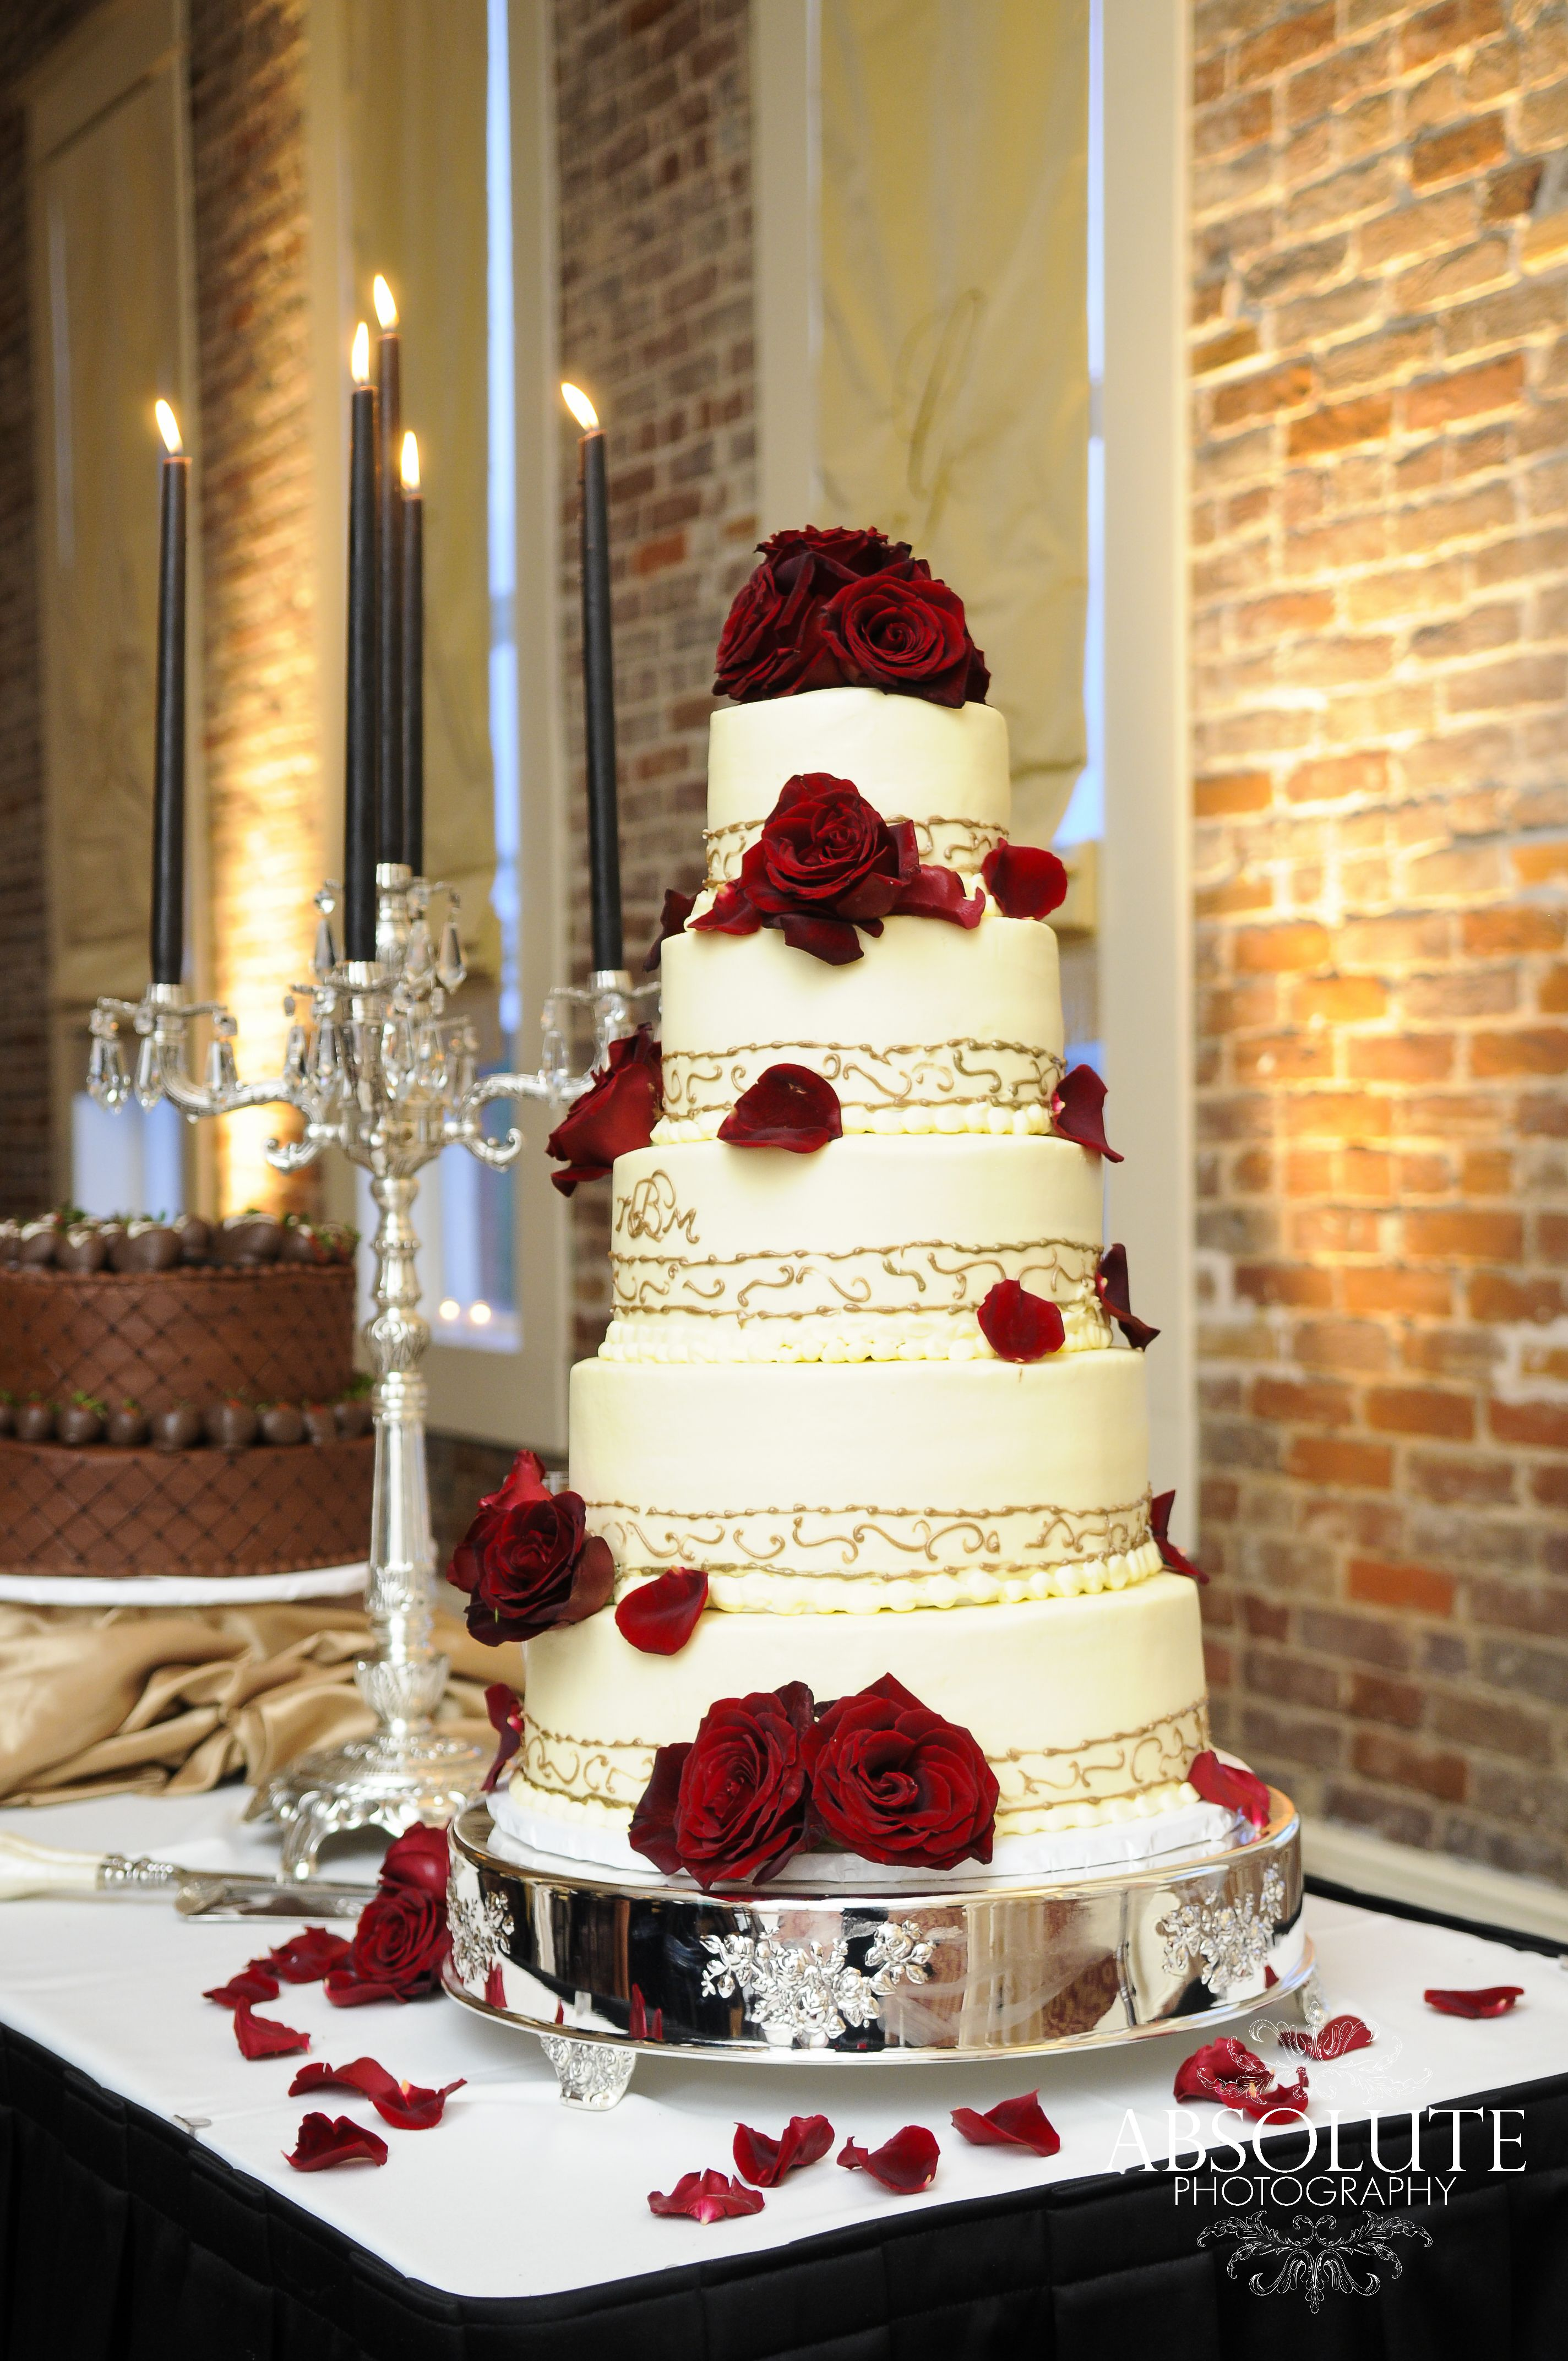 Bride And Groom S Cake On The Same Table With Dramatic Decorations And Lighting Hotel Ballroom Wedding Decorations Grooms Cake